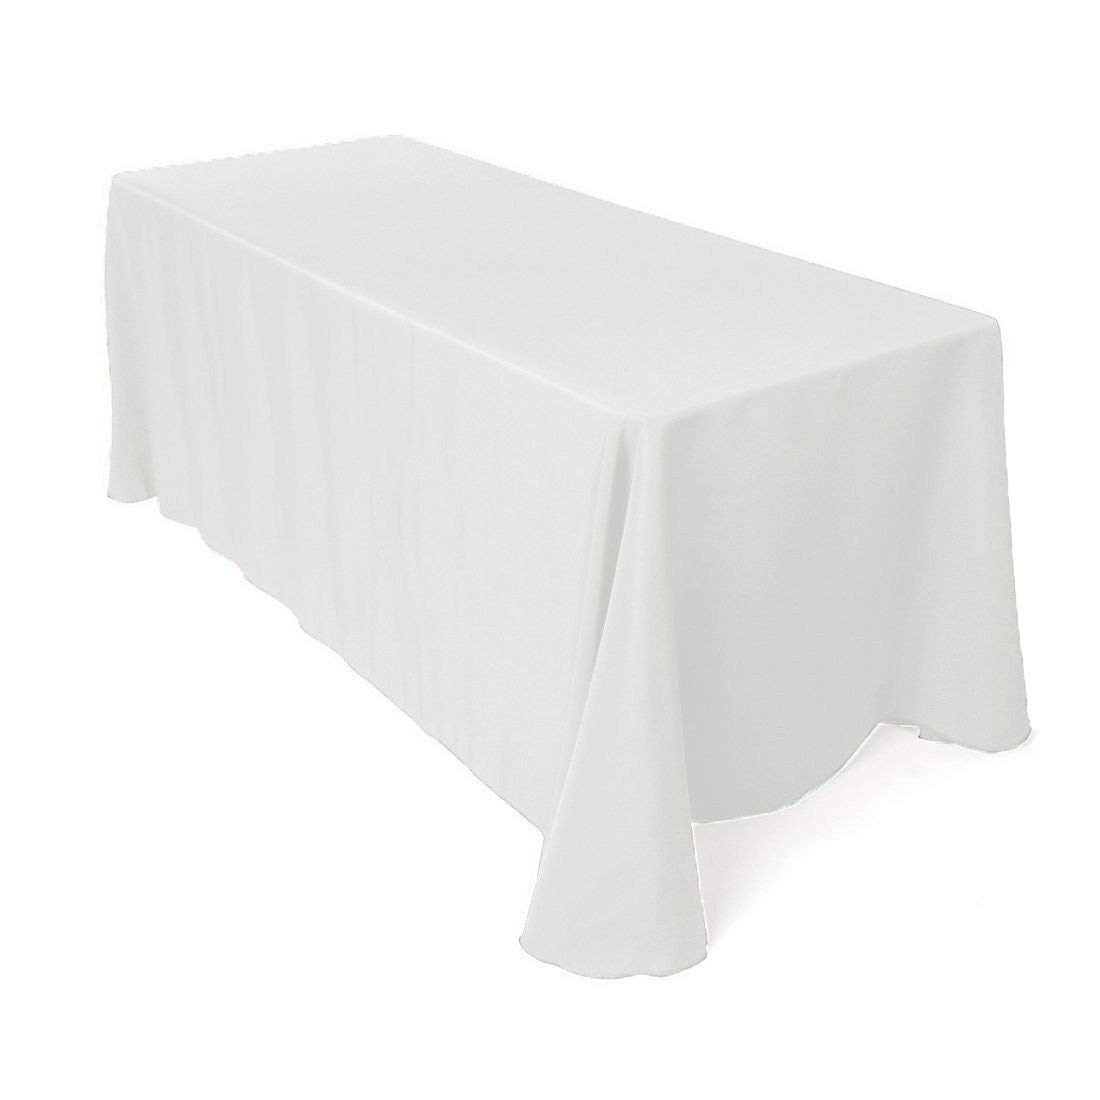 """90""""x132"""" Rectangular Seamless Tablecloth for Wedding Restaurant Banquet Party by GW Home (White)"""